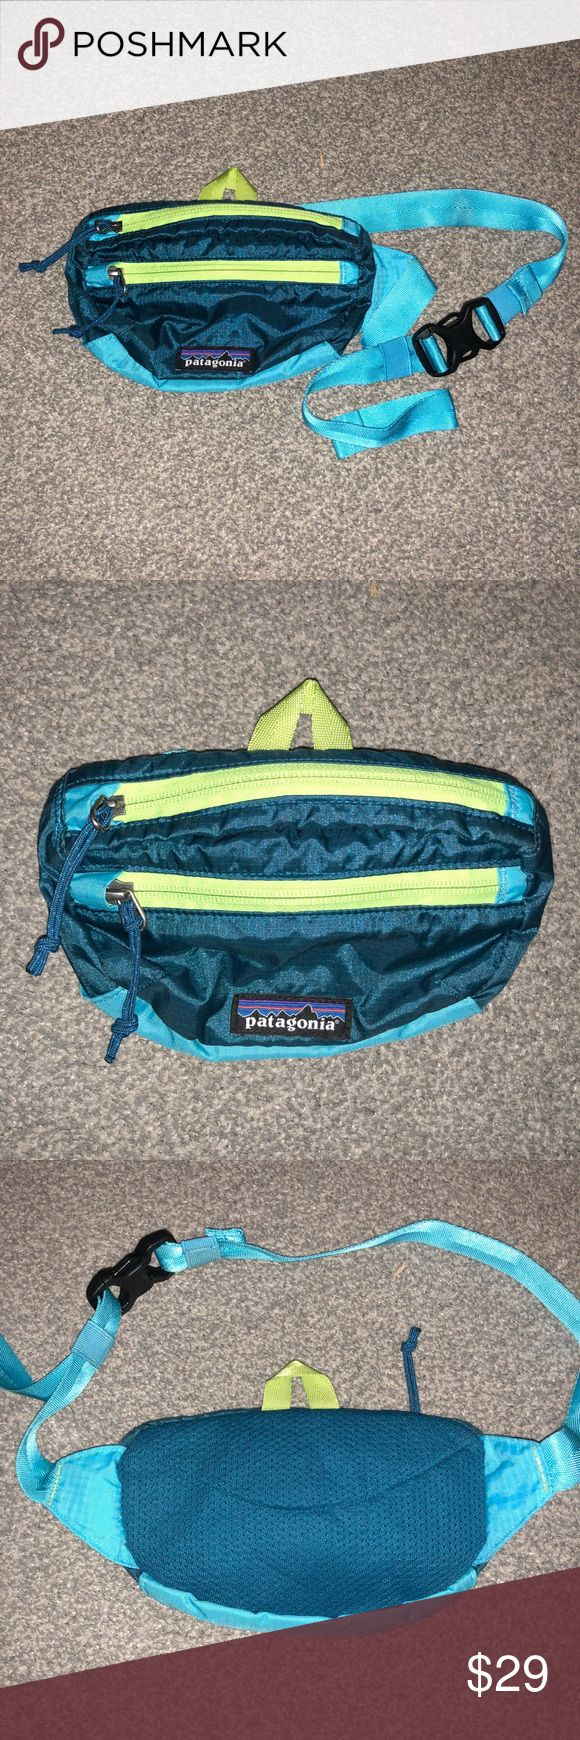 Patagonia Adjustable Waist Hip Bag Fanny Pack It sits around your waist like a traditional fanny pack, but can also be slung comfortably over your shoulder and even packs into its own internal pocket when you have your passport, phone, wallet, and emergency snack tucked away elsewhere.   Nylon ripstop fabric Water-resistant PU coating Internal security pocket doubles as a stuff sack Front pocket Herringbone webbing belt 1 main, 1 zippered security, 1 front Patagonia Bags